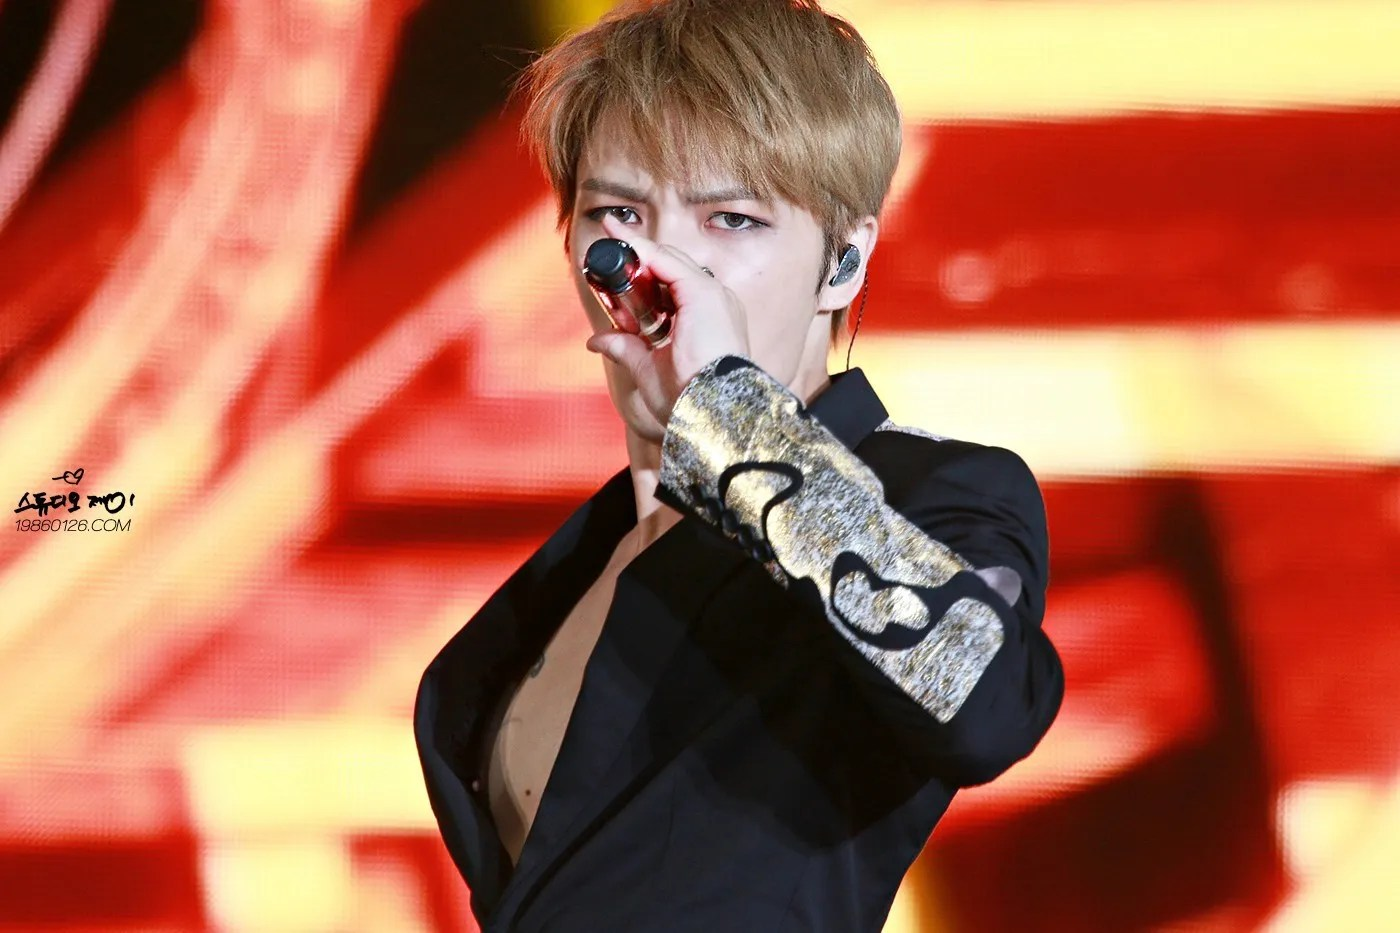 Hq Pics  141005 Jyj U2019s Exclusive Concert For 2014 Gangnam